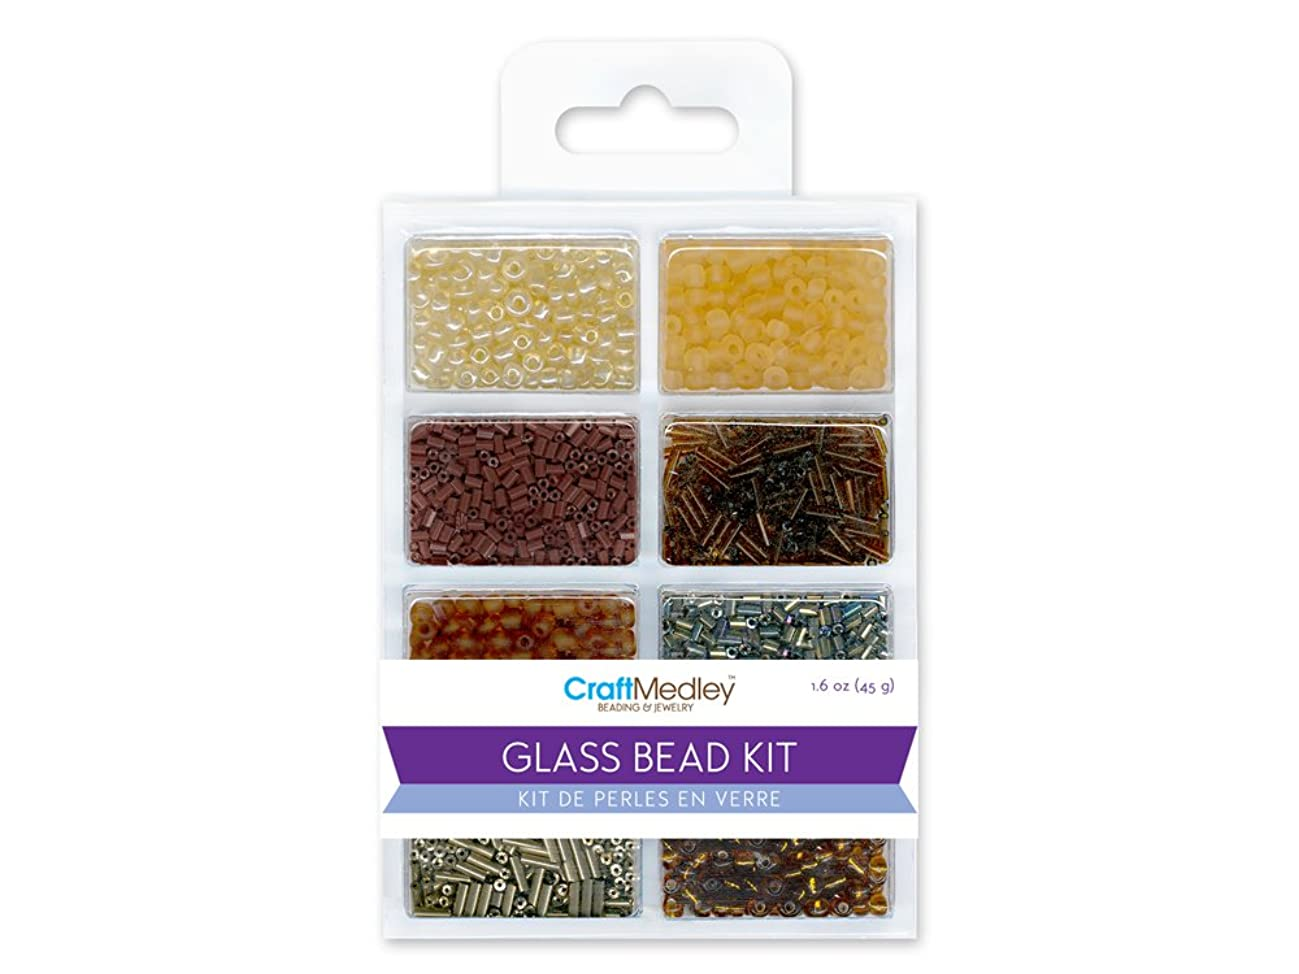 Multicraft Imports Glass Bead Kit, 45g, Rocailles/Seed/Bugles, Nuggets